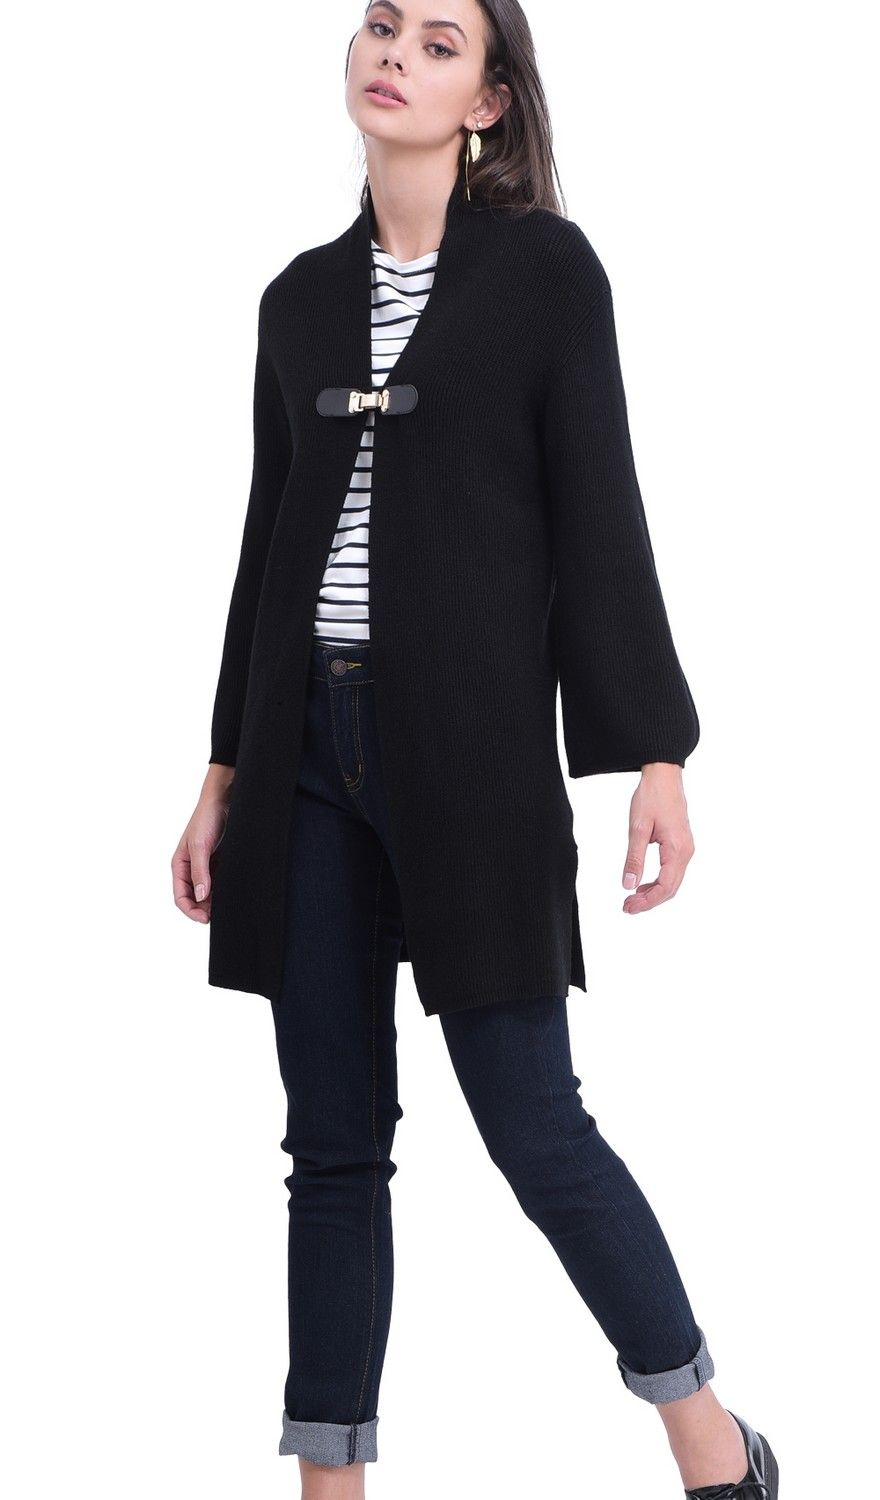 William De Faye Longline Cardigan with Leather Button in Black